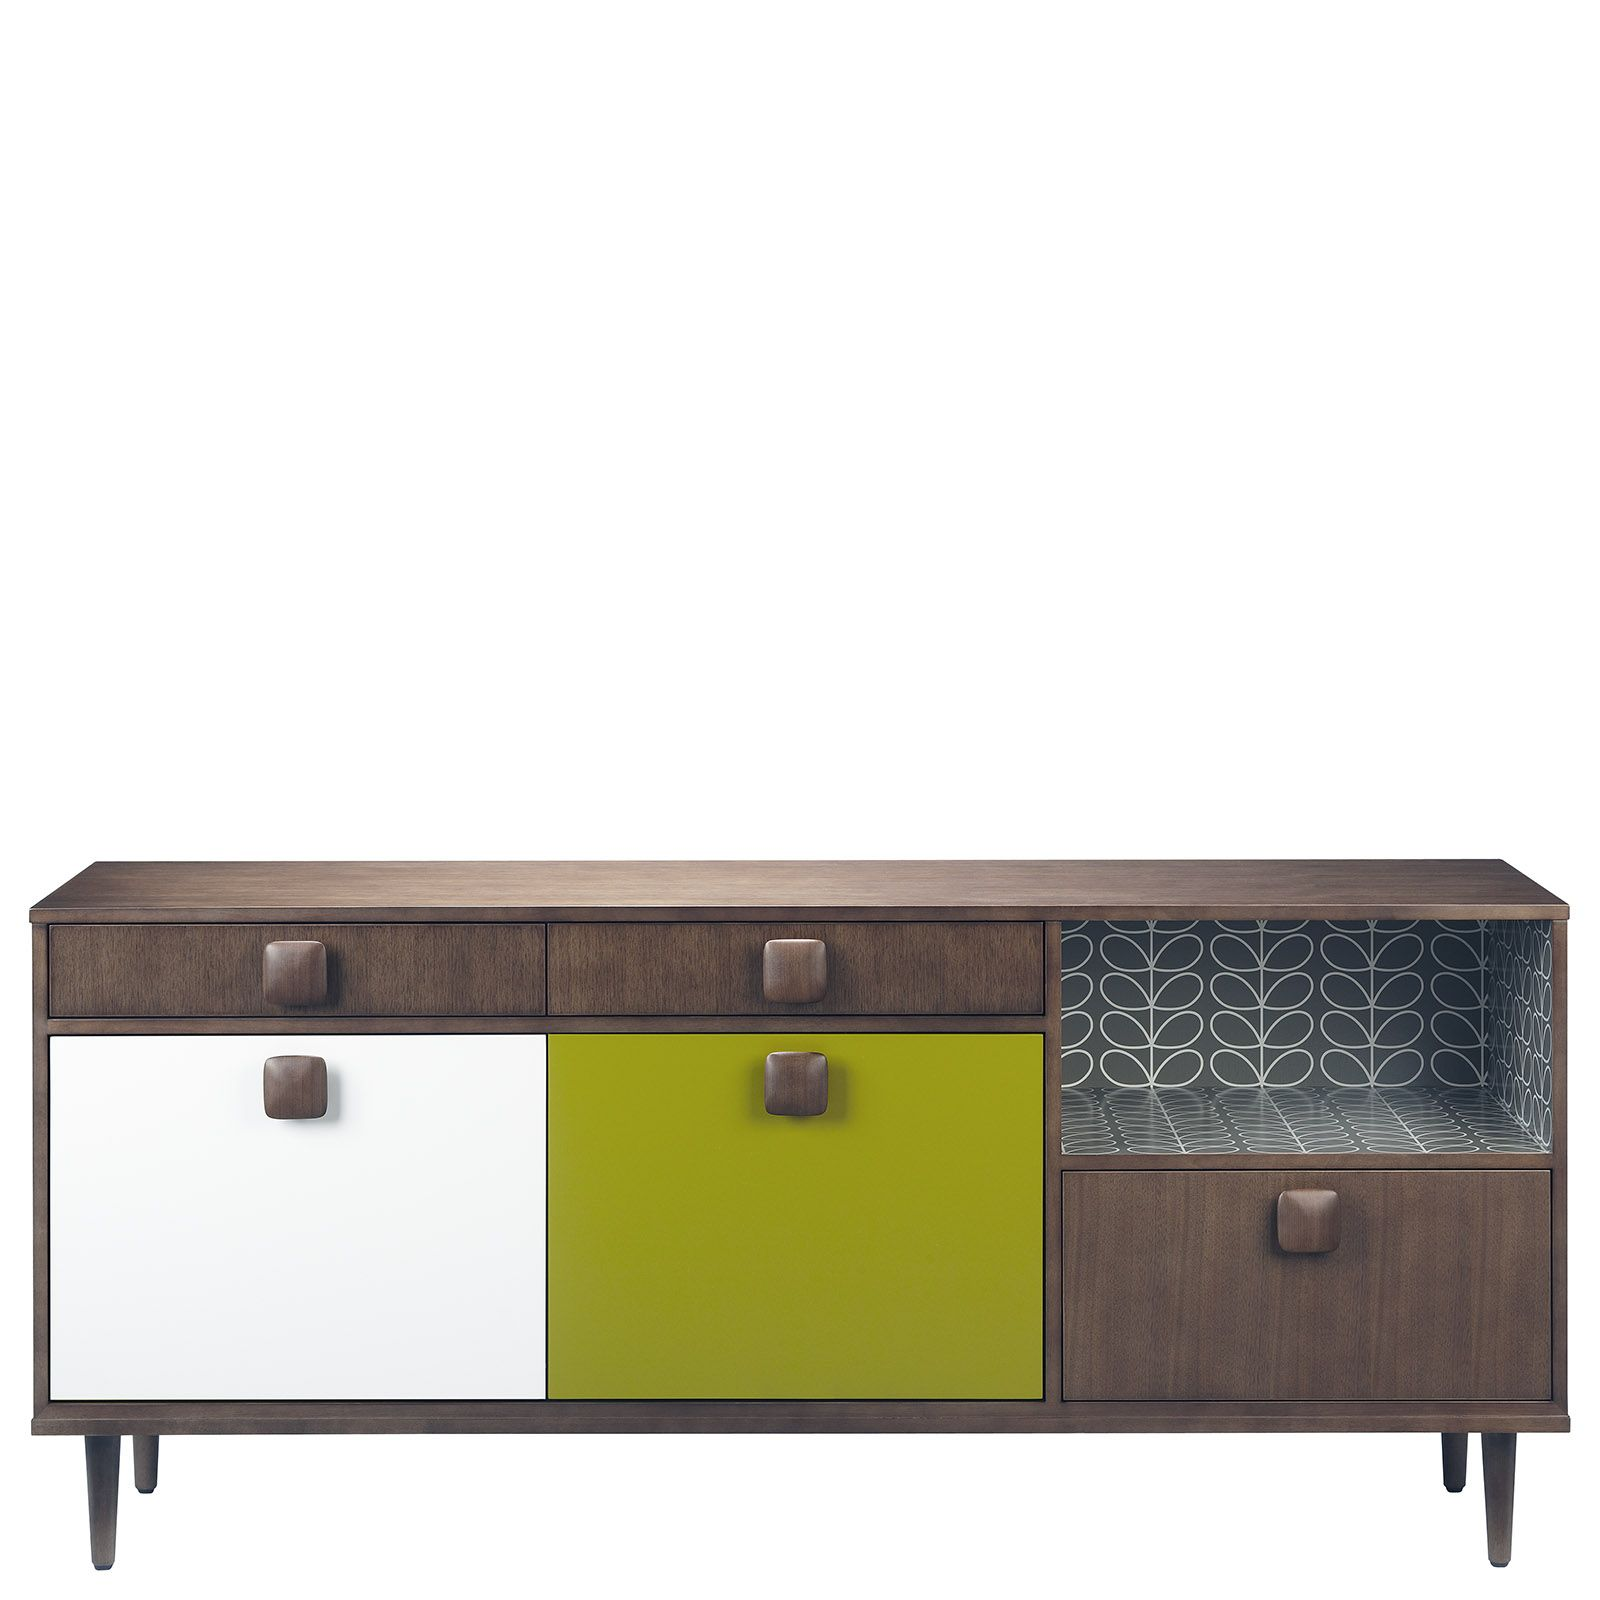 Orla Kiely: Walnut, Solid And Veneered Sideboard With Lacquered Olive And  Cream MDF Panels